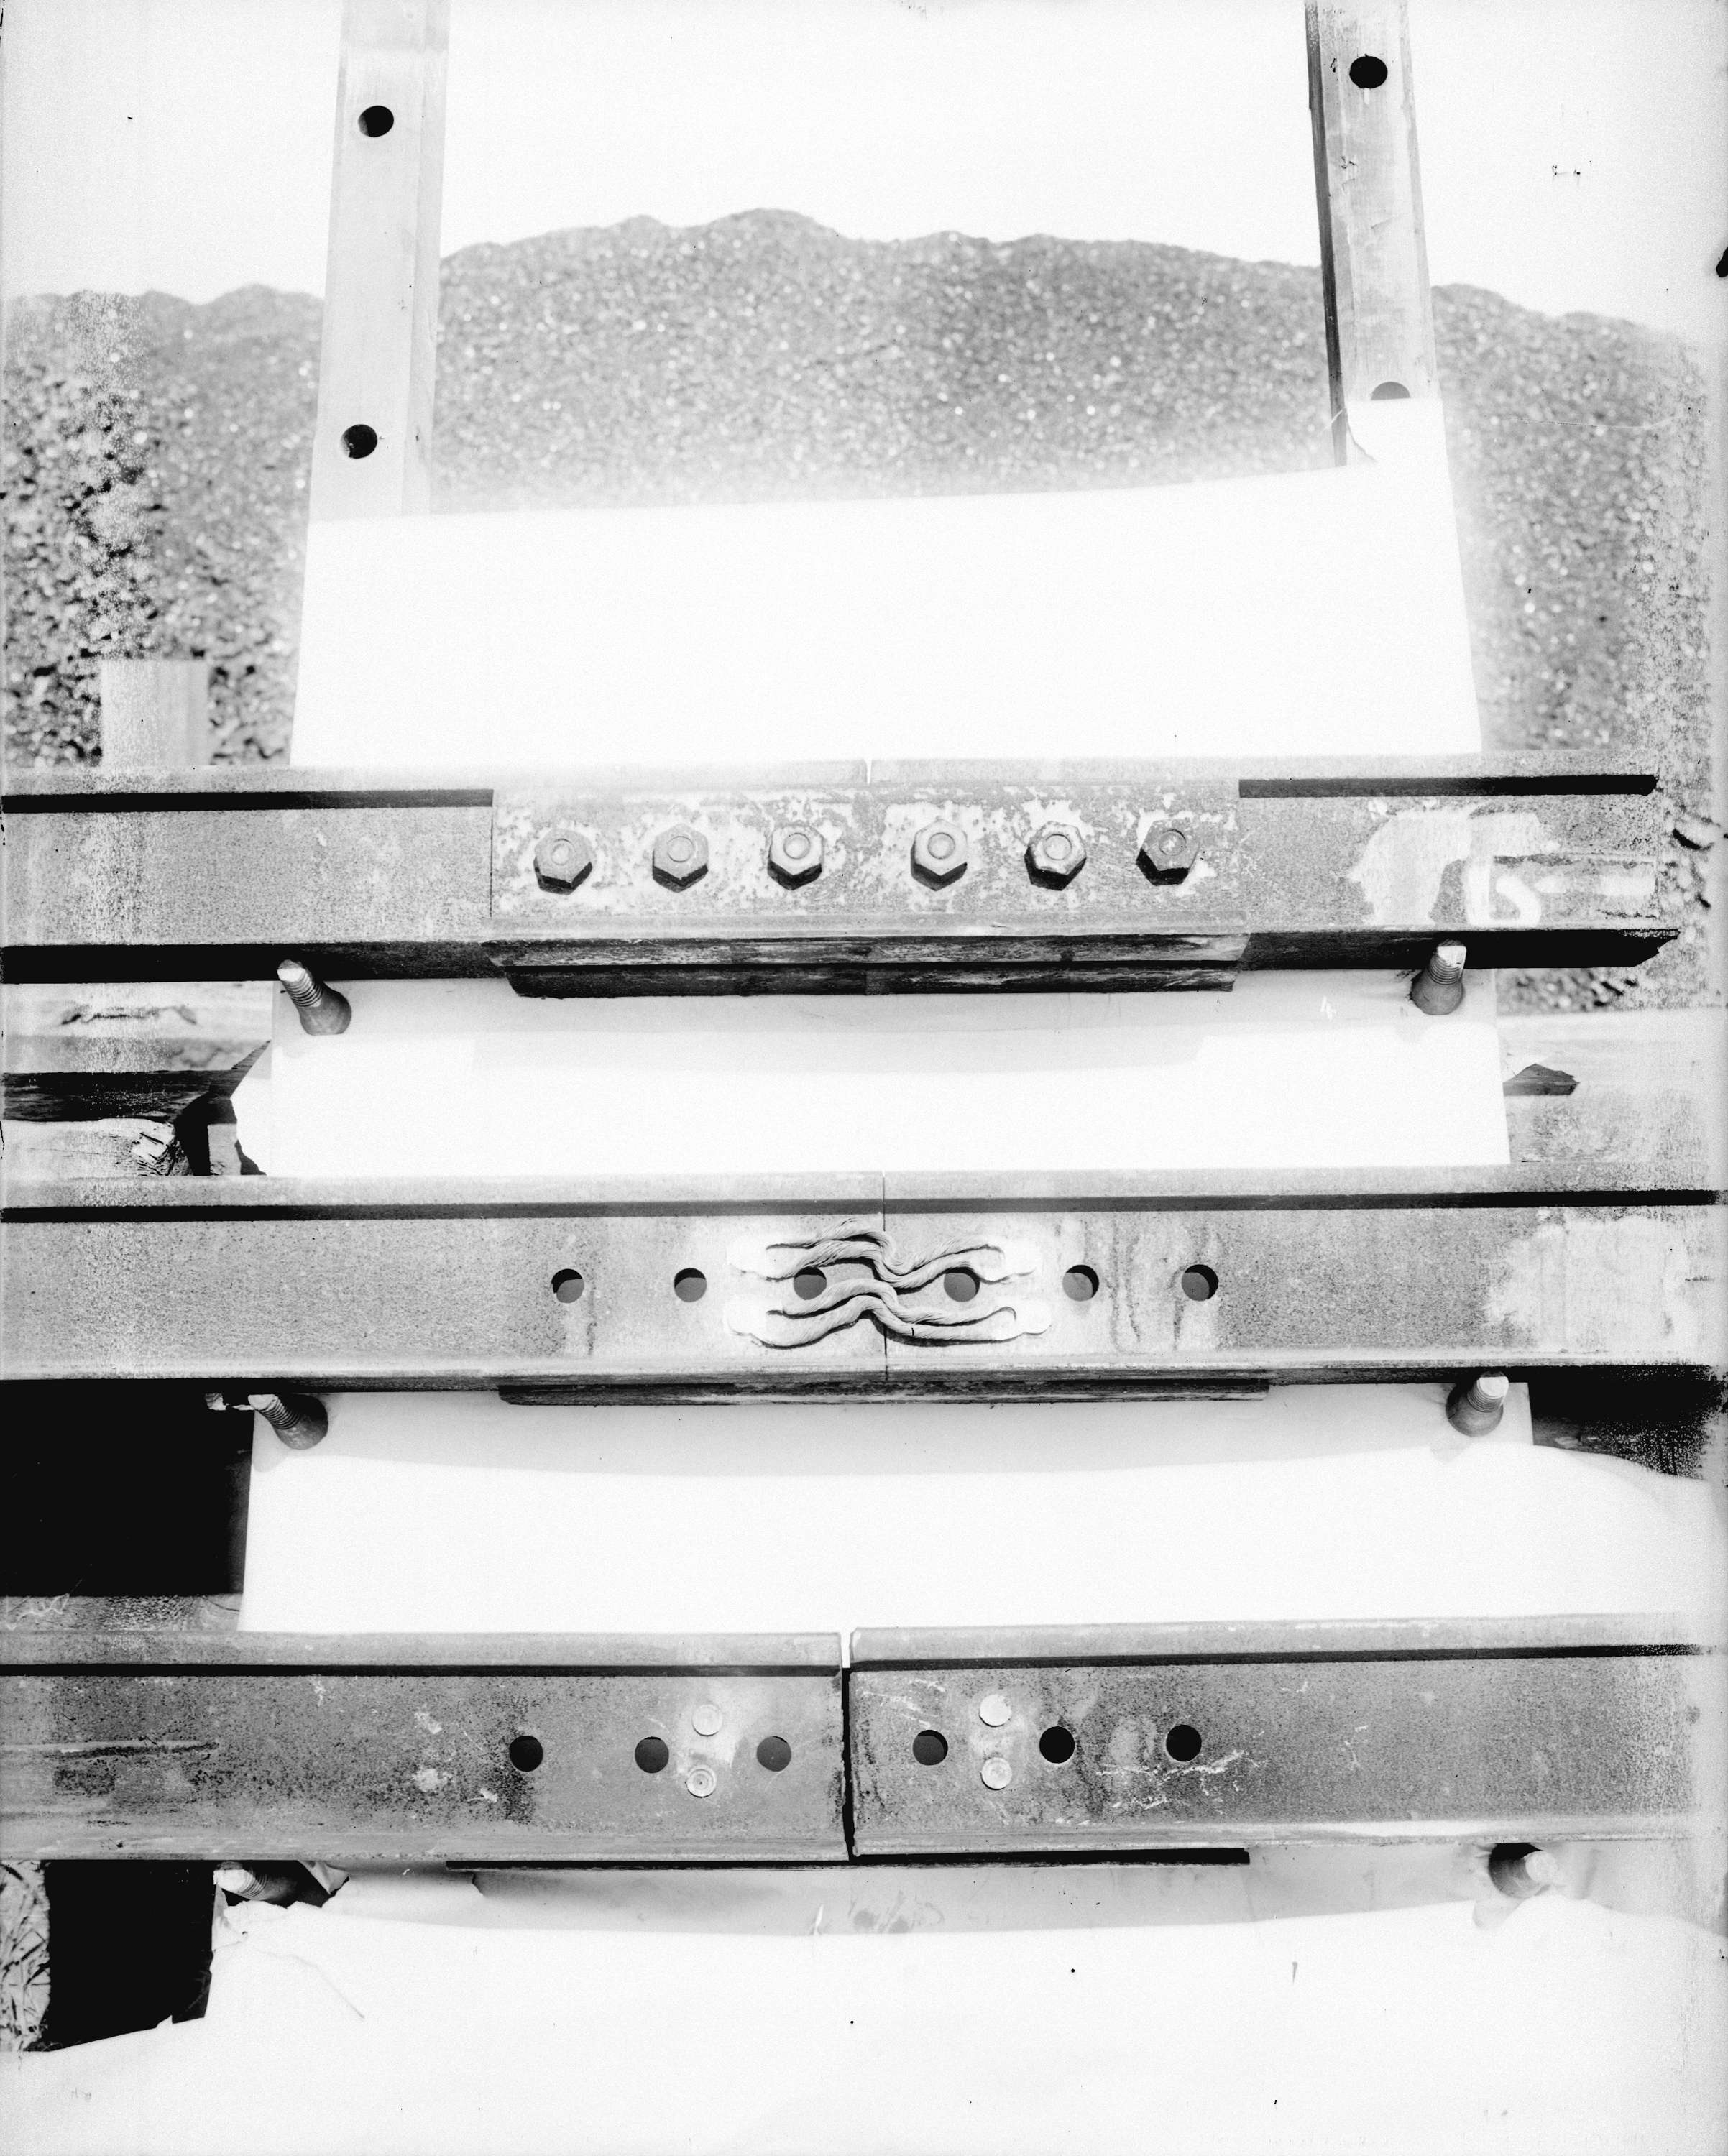 Three rail joints, showing various types of rail bonds